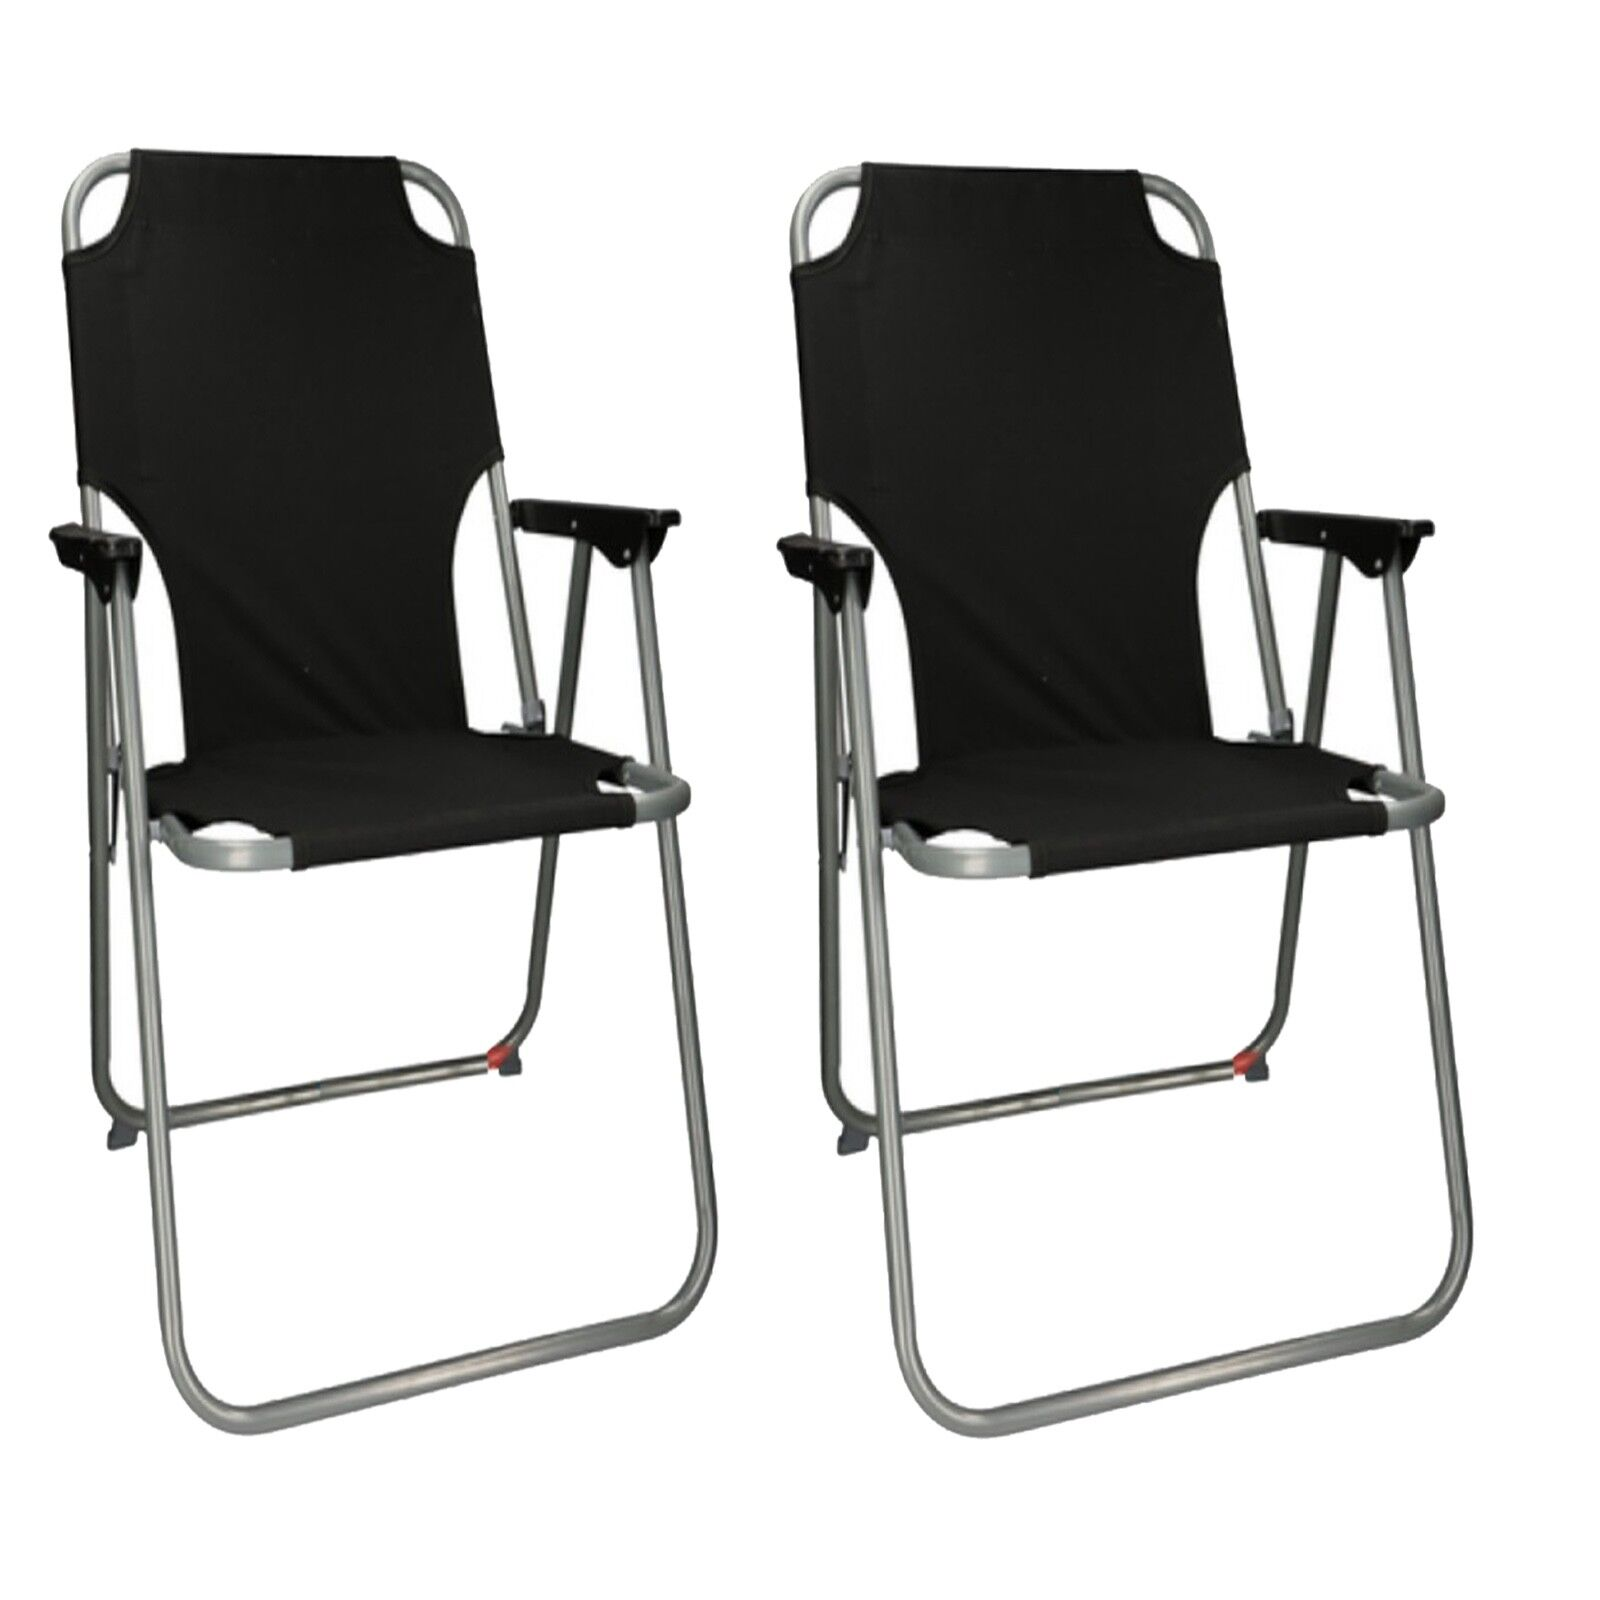 2x Outdoor Portable  Folding Chair Camping Hiking Beach Seat Stool For BBQ Picnic  free shipping & exchanges.